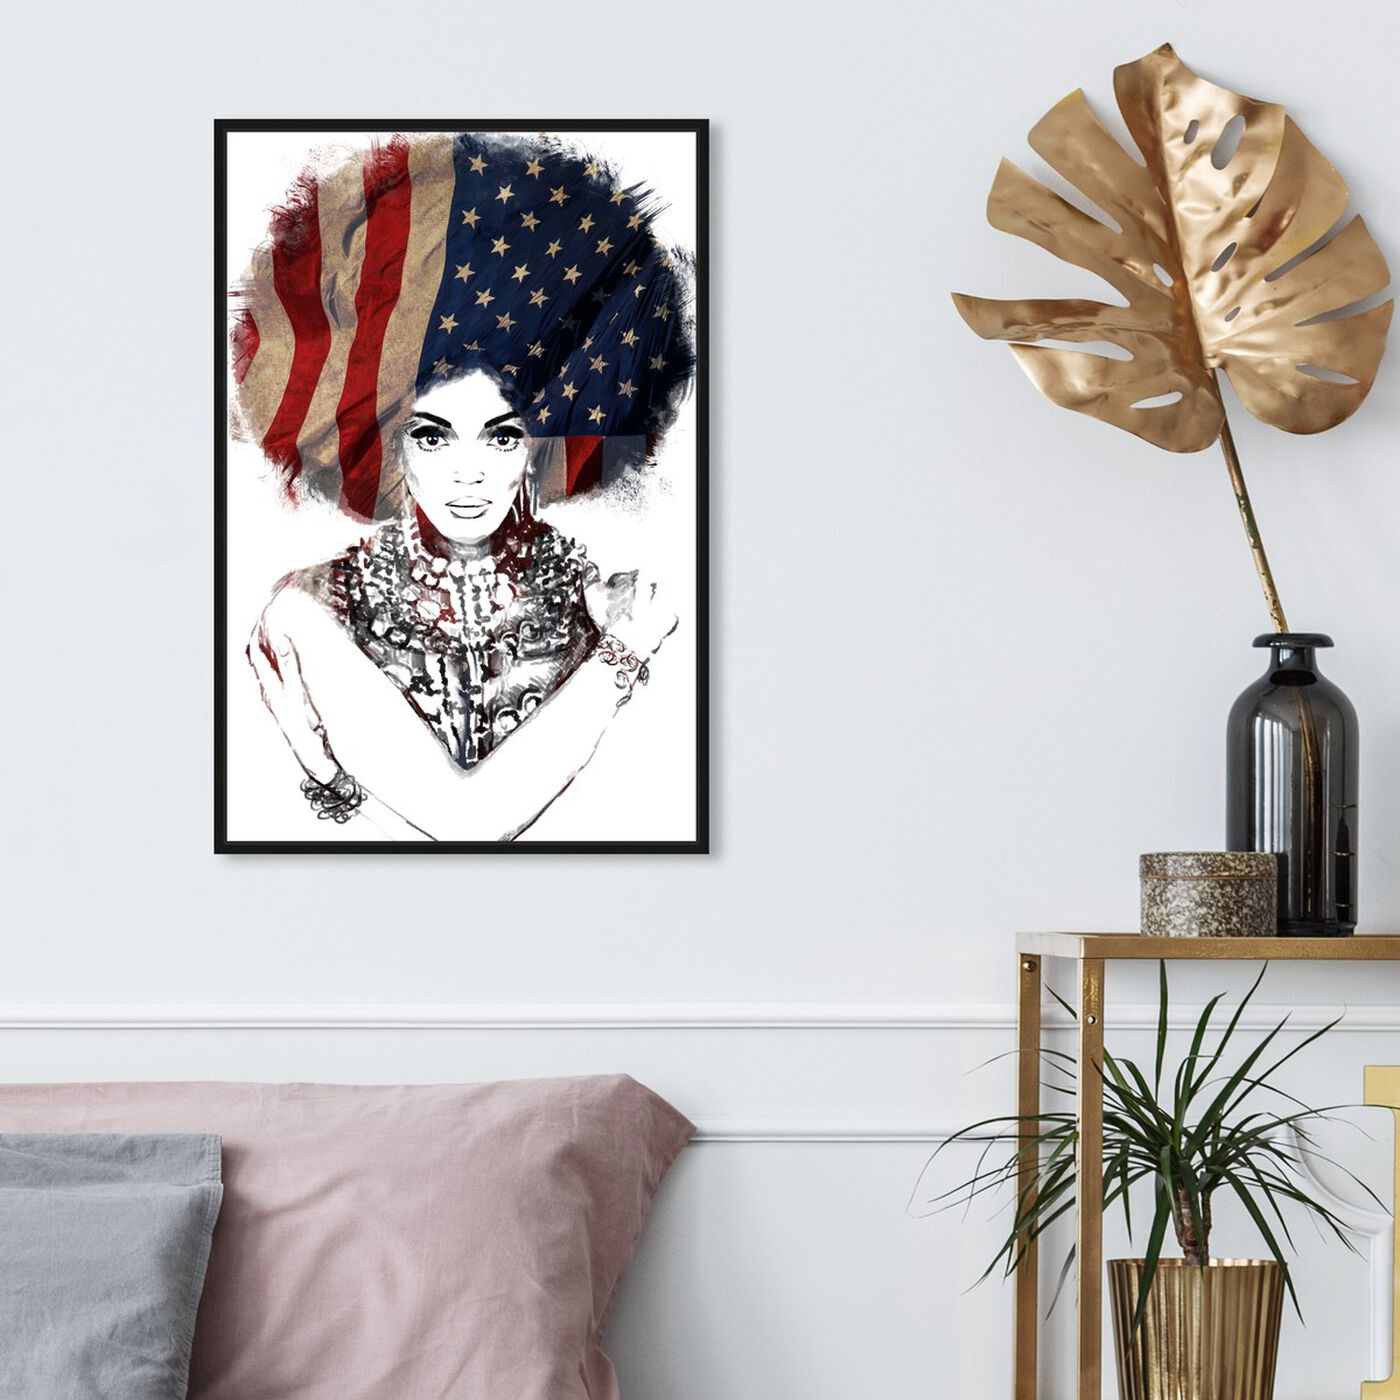 Hanging view of New American Woman featuring people and portraits and portraits art.